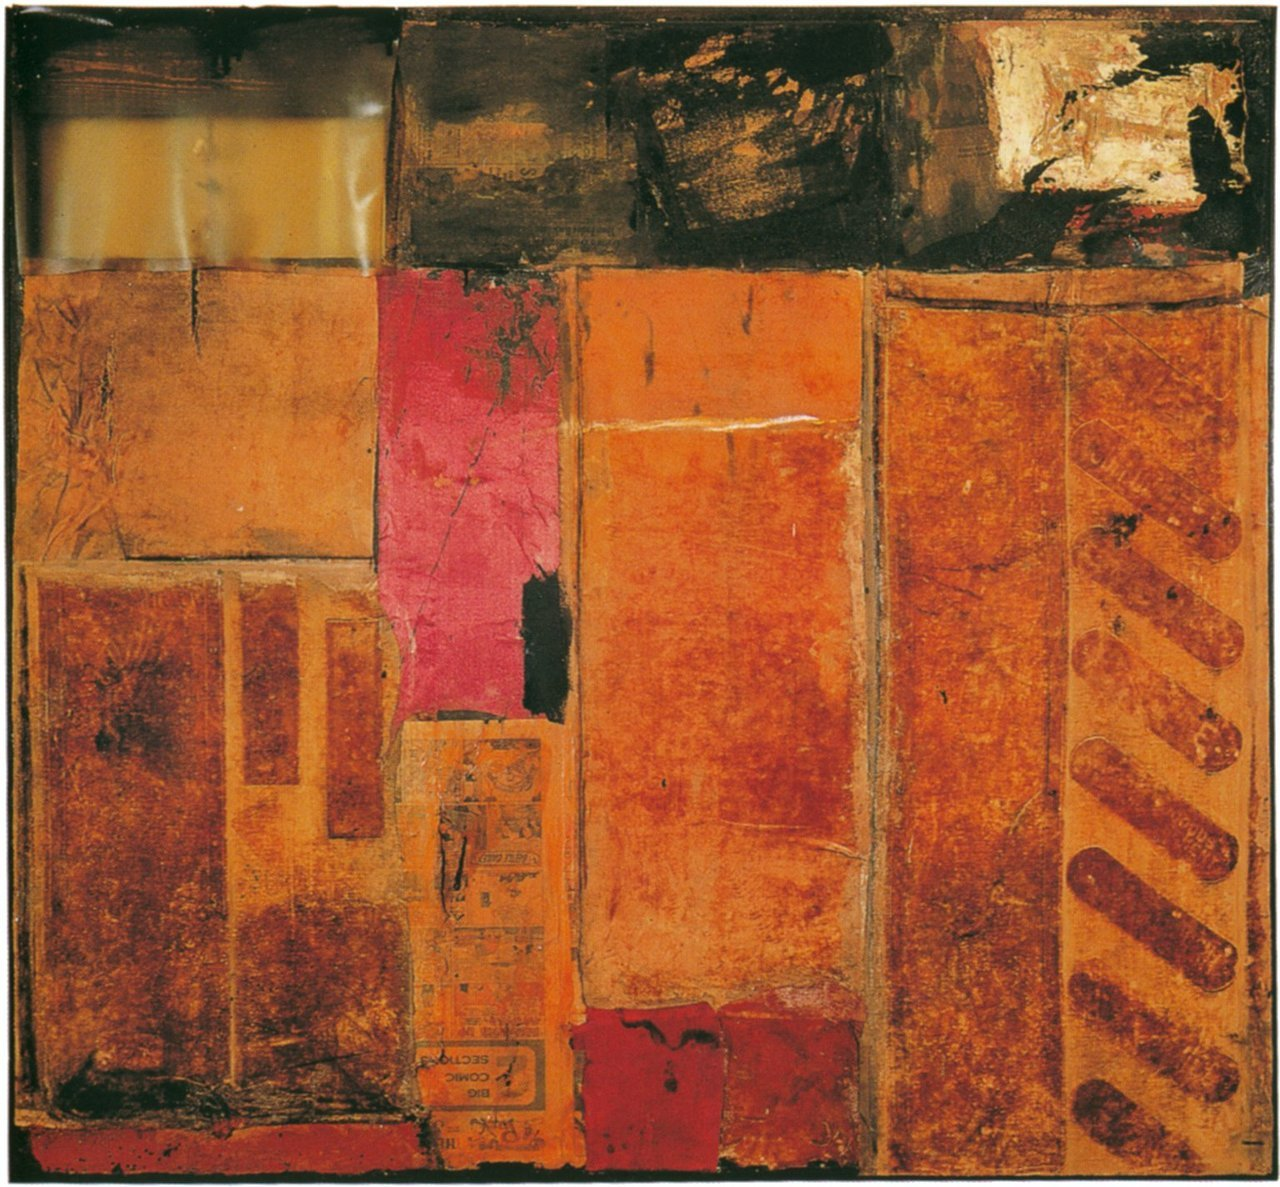 workman:  palmofmyhands: Robert Rauschenberg, Red Interior, 1954